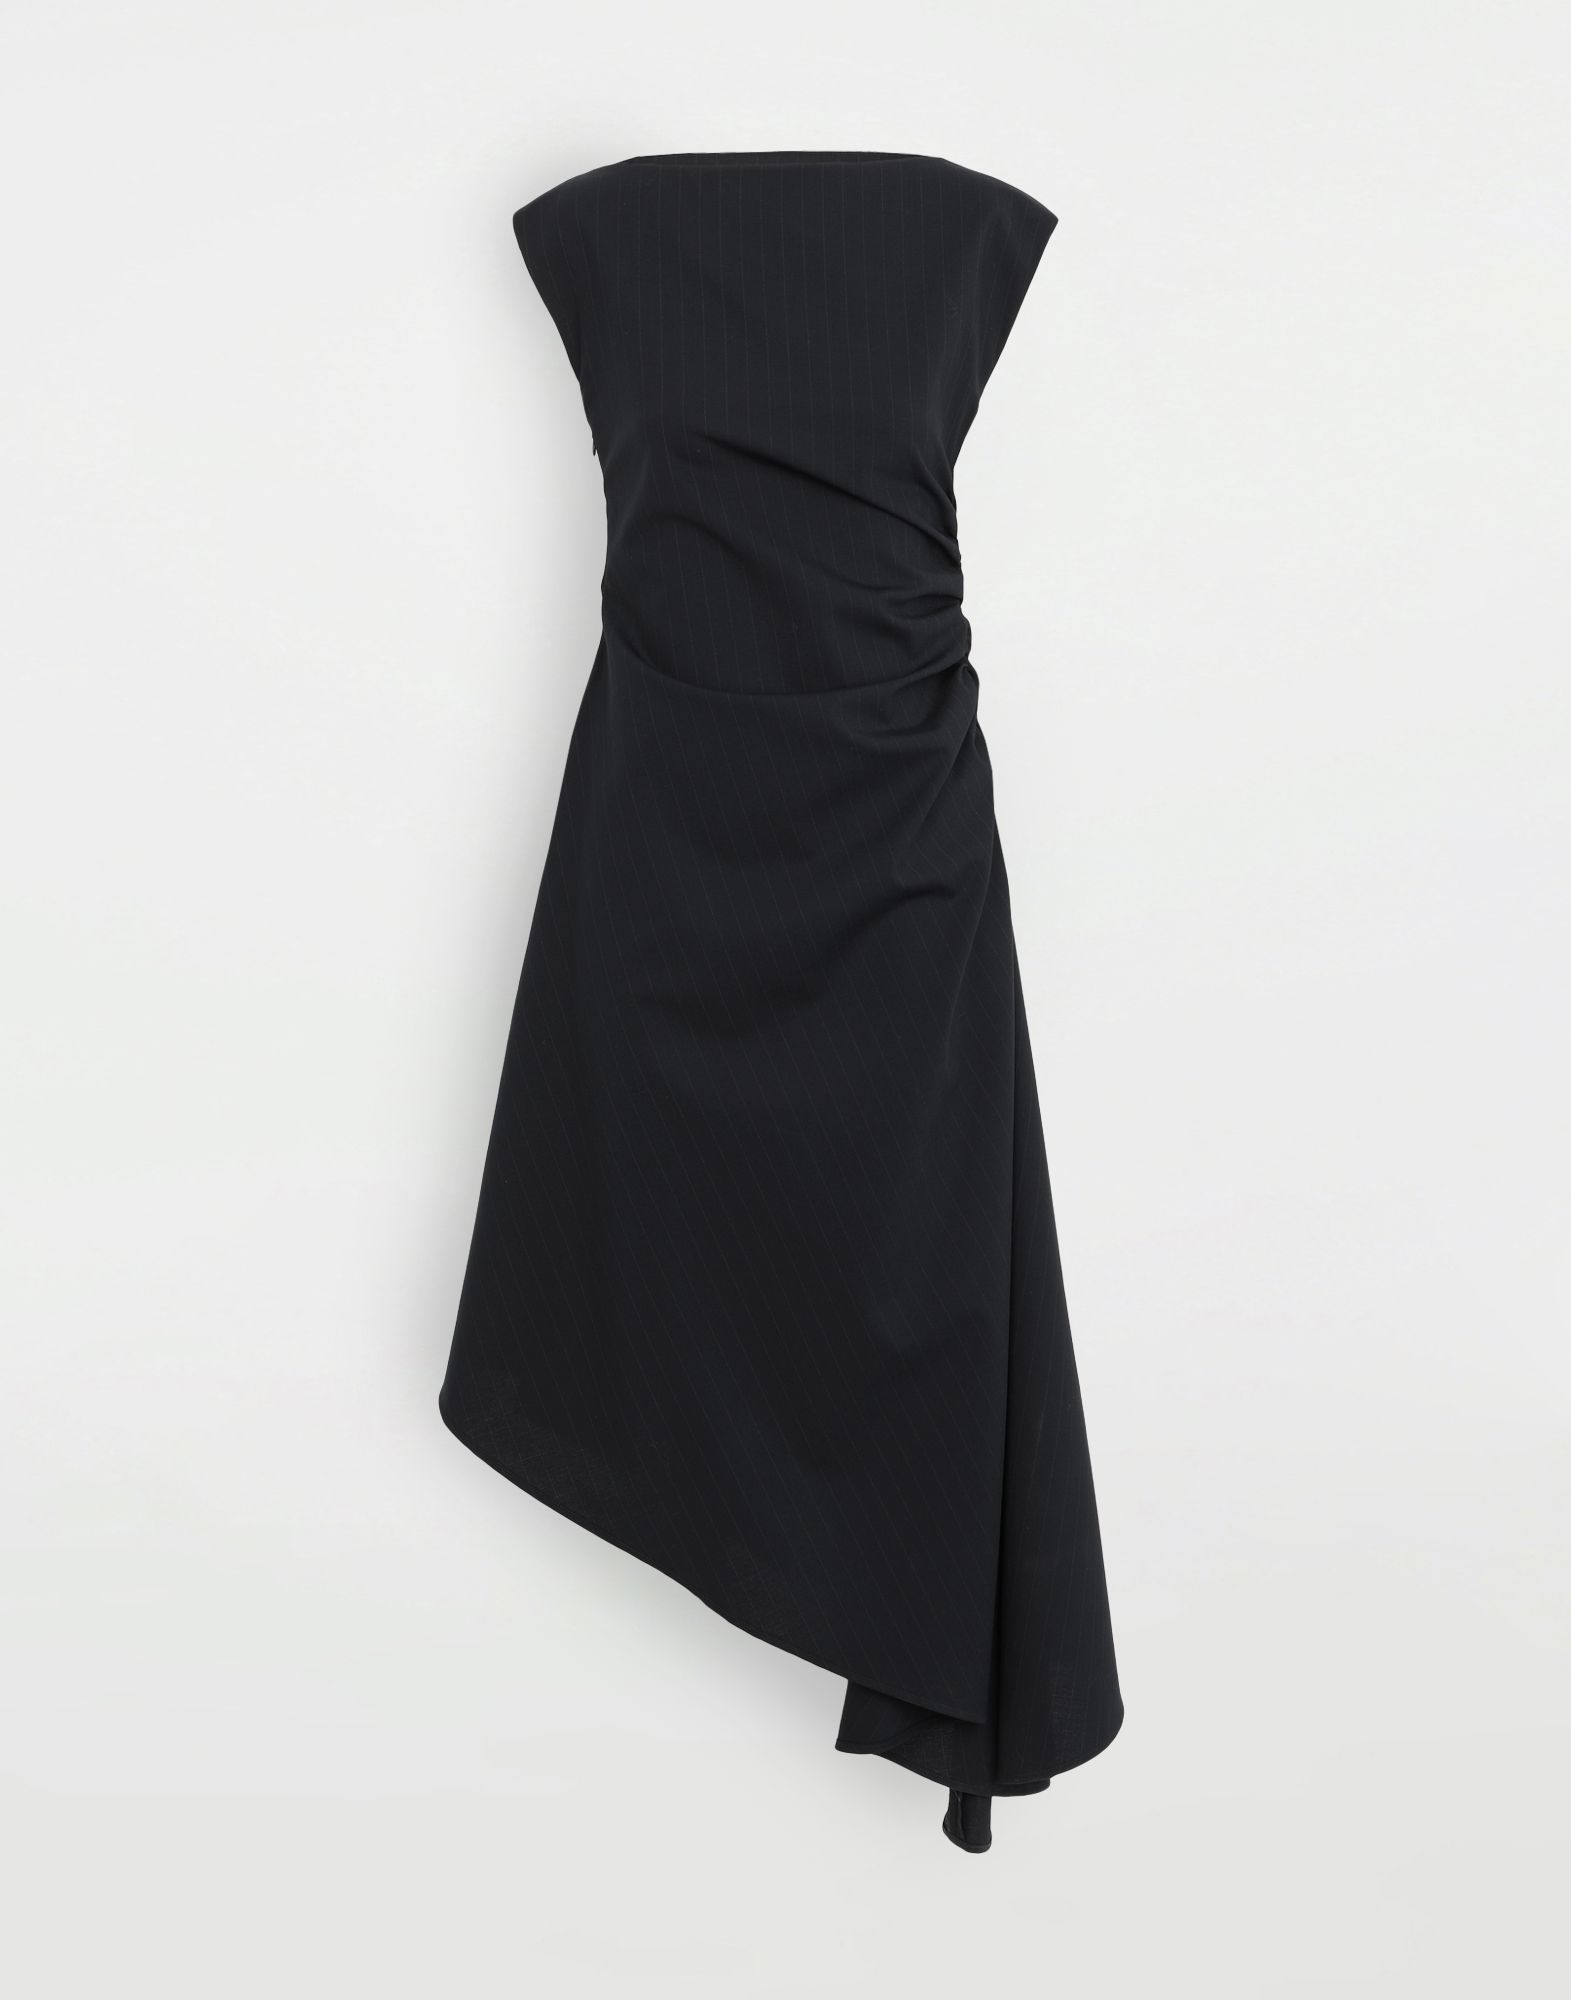 MM6 MAISON MARGIELA Asymmetric dress Dress Woman f